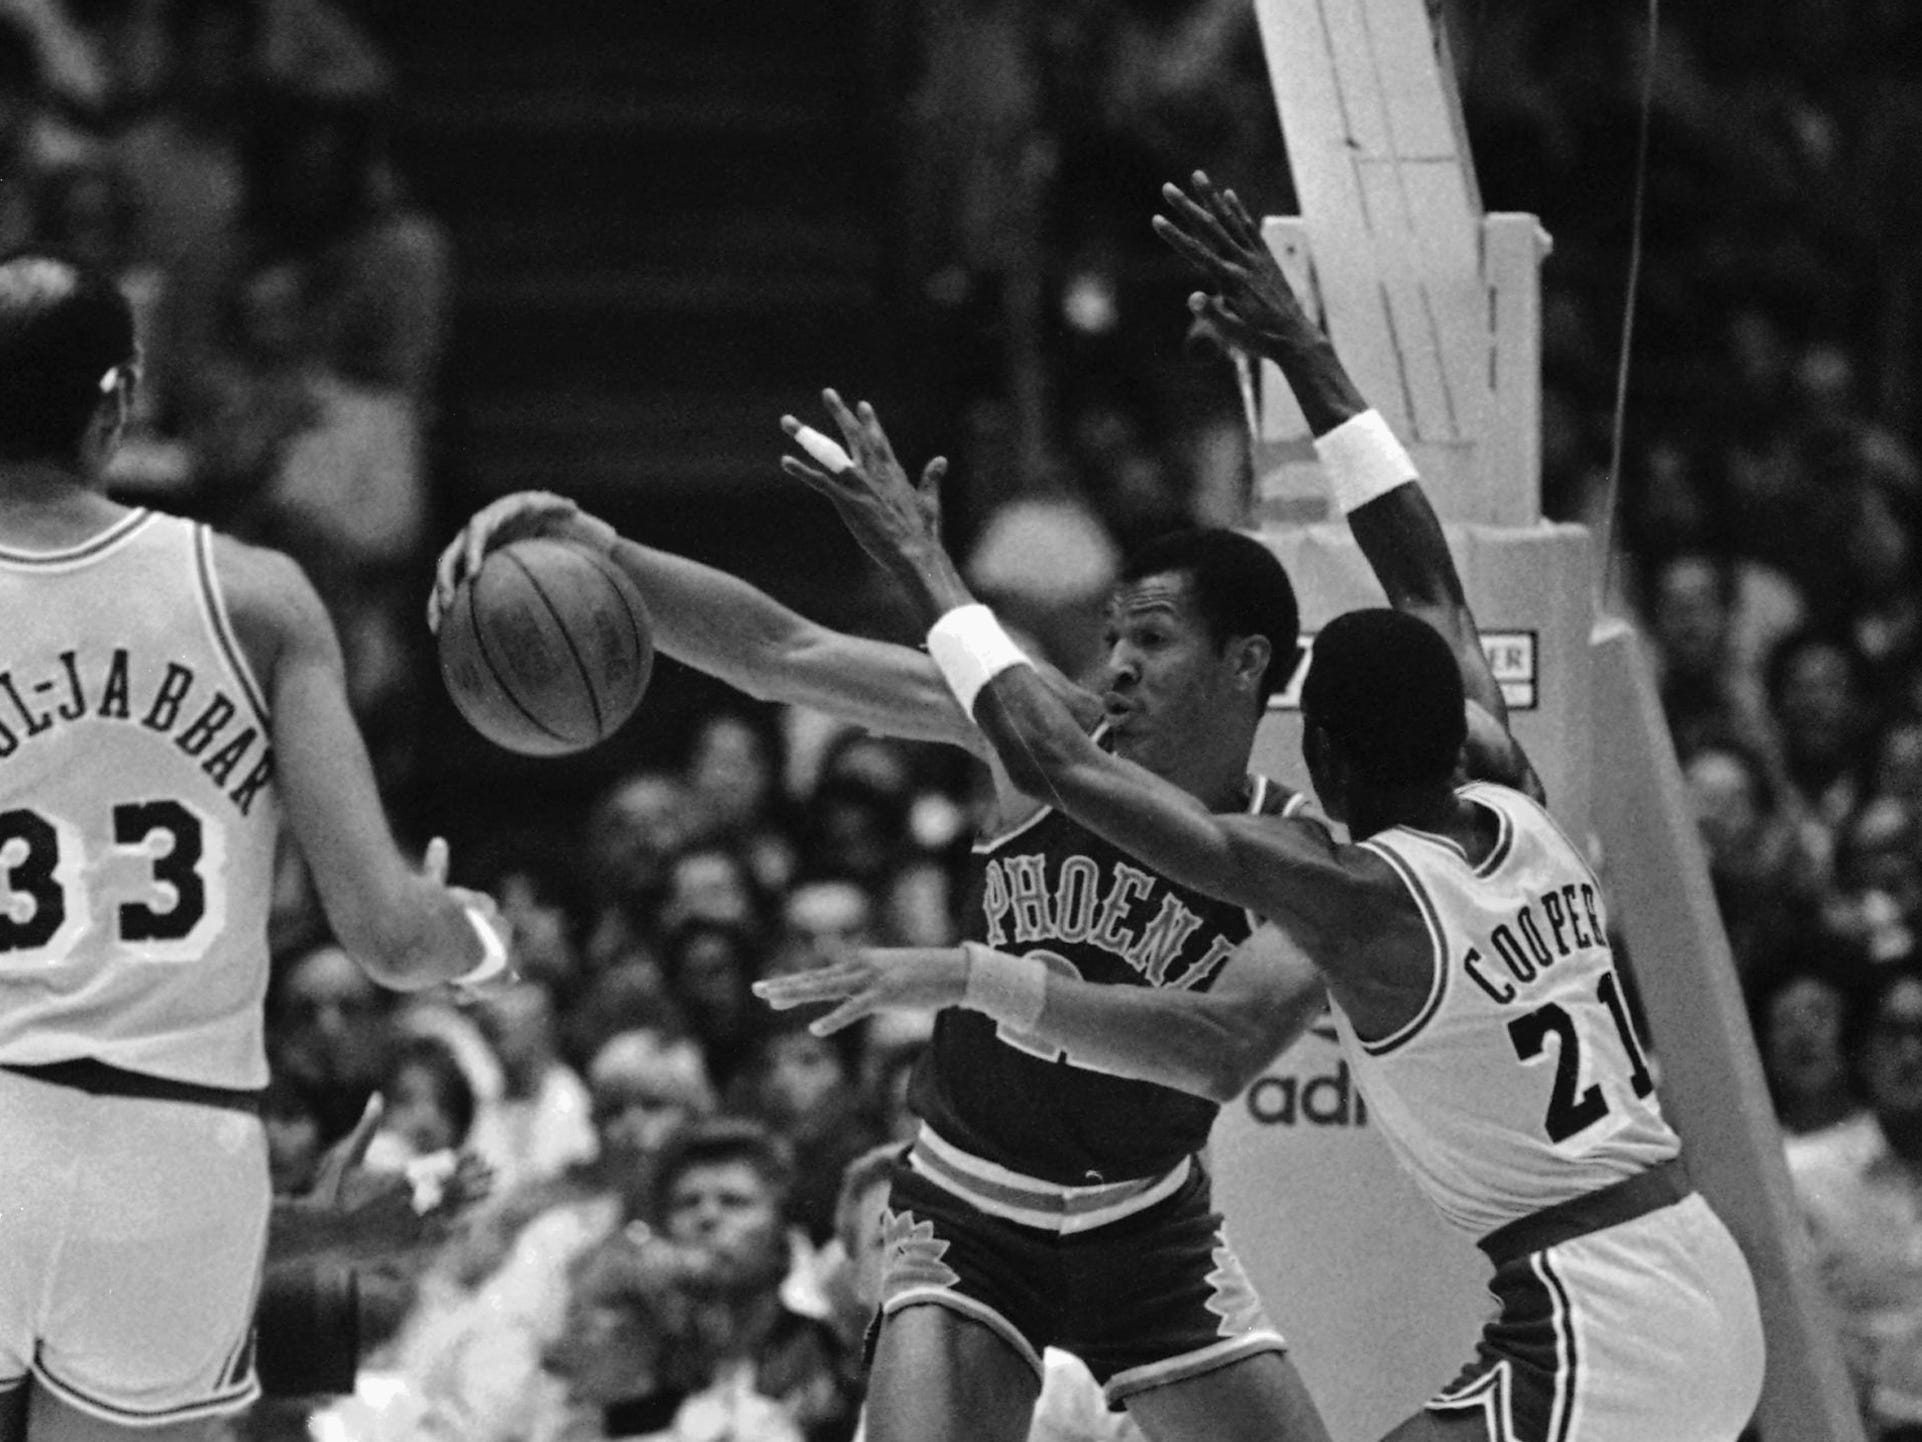 1984-85 | Suns MVP: Larry Nance. Nance earned his first All Star selection and proved himself as an emerging star before injuries limited him to 61 games.